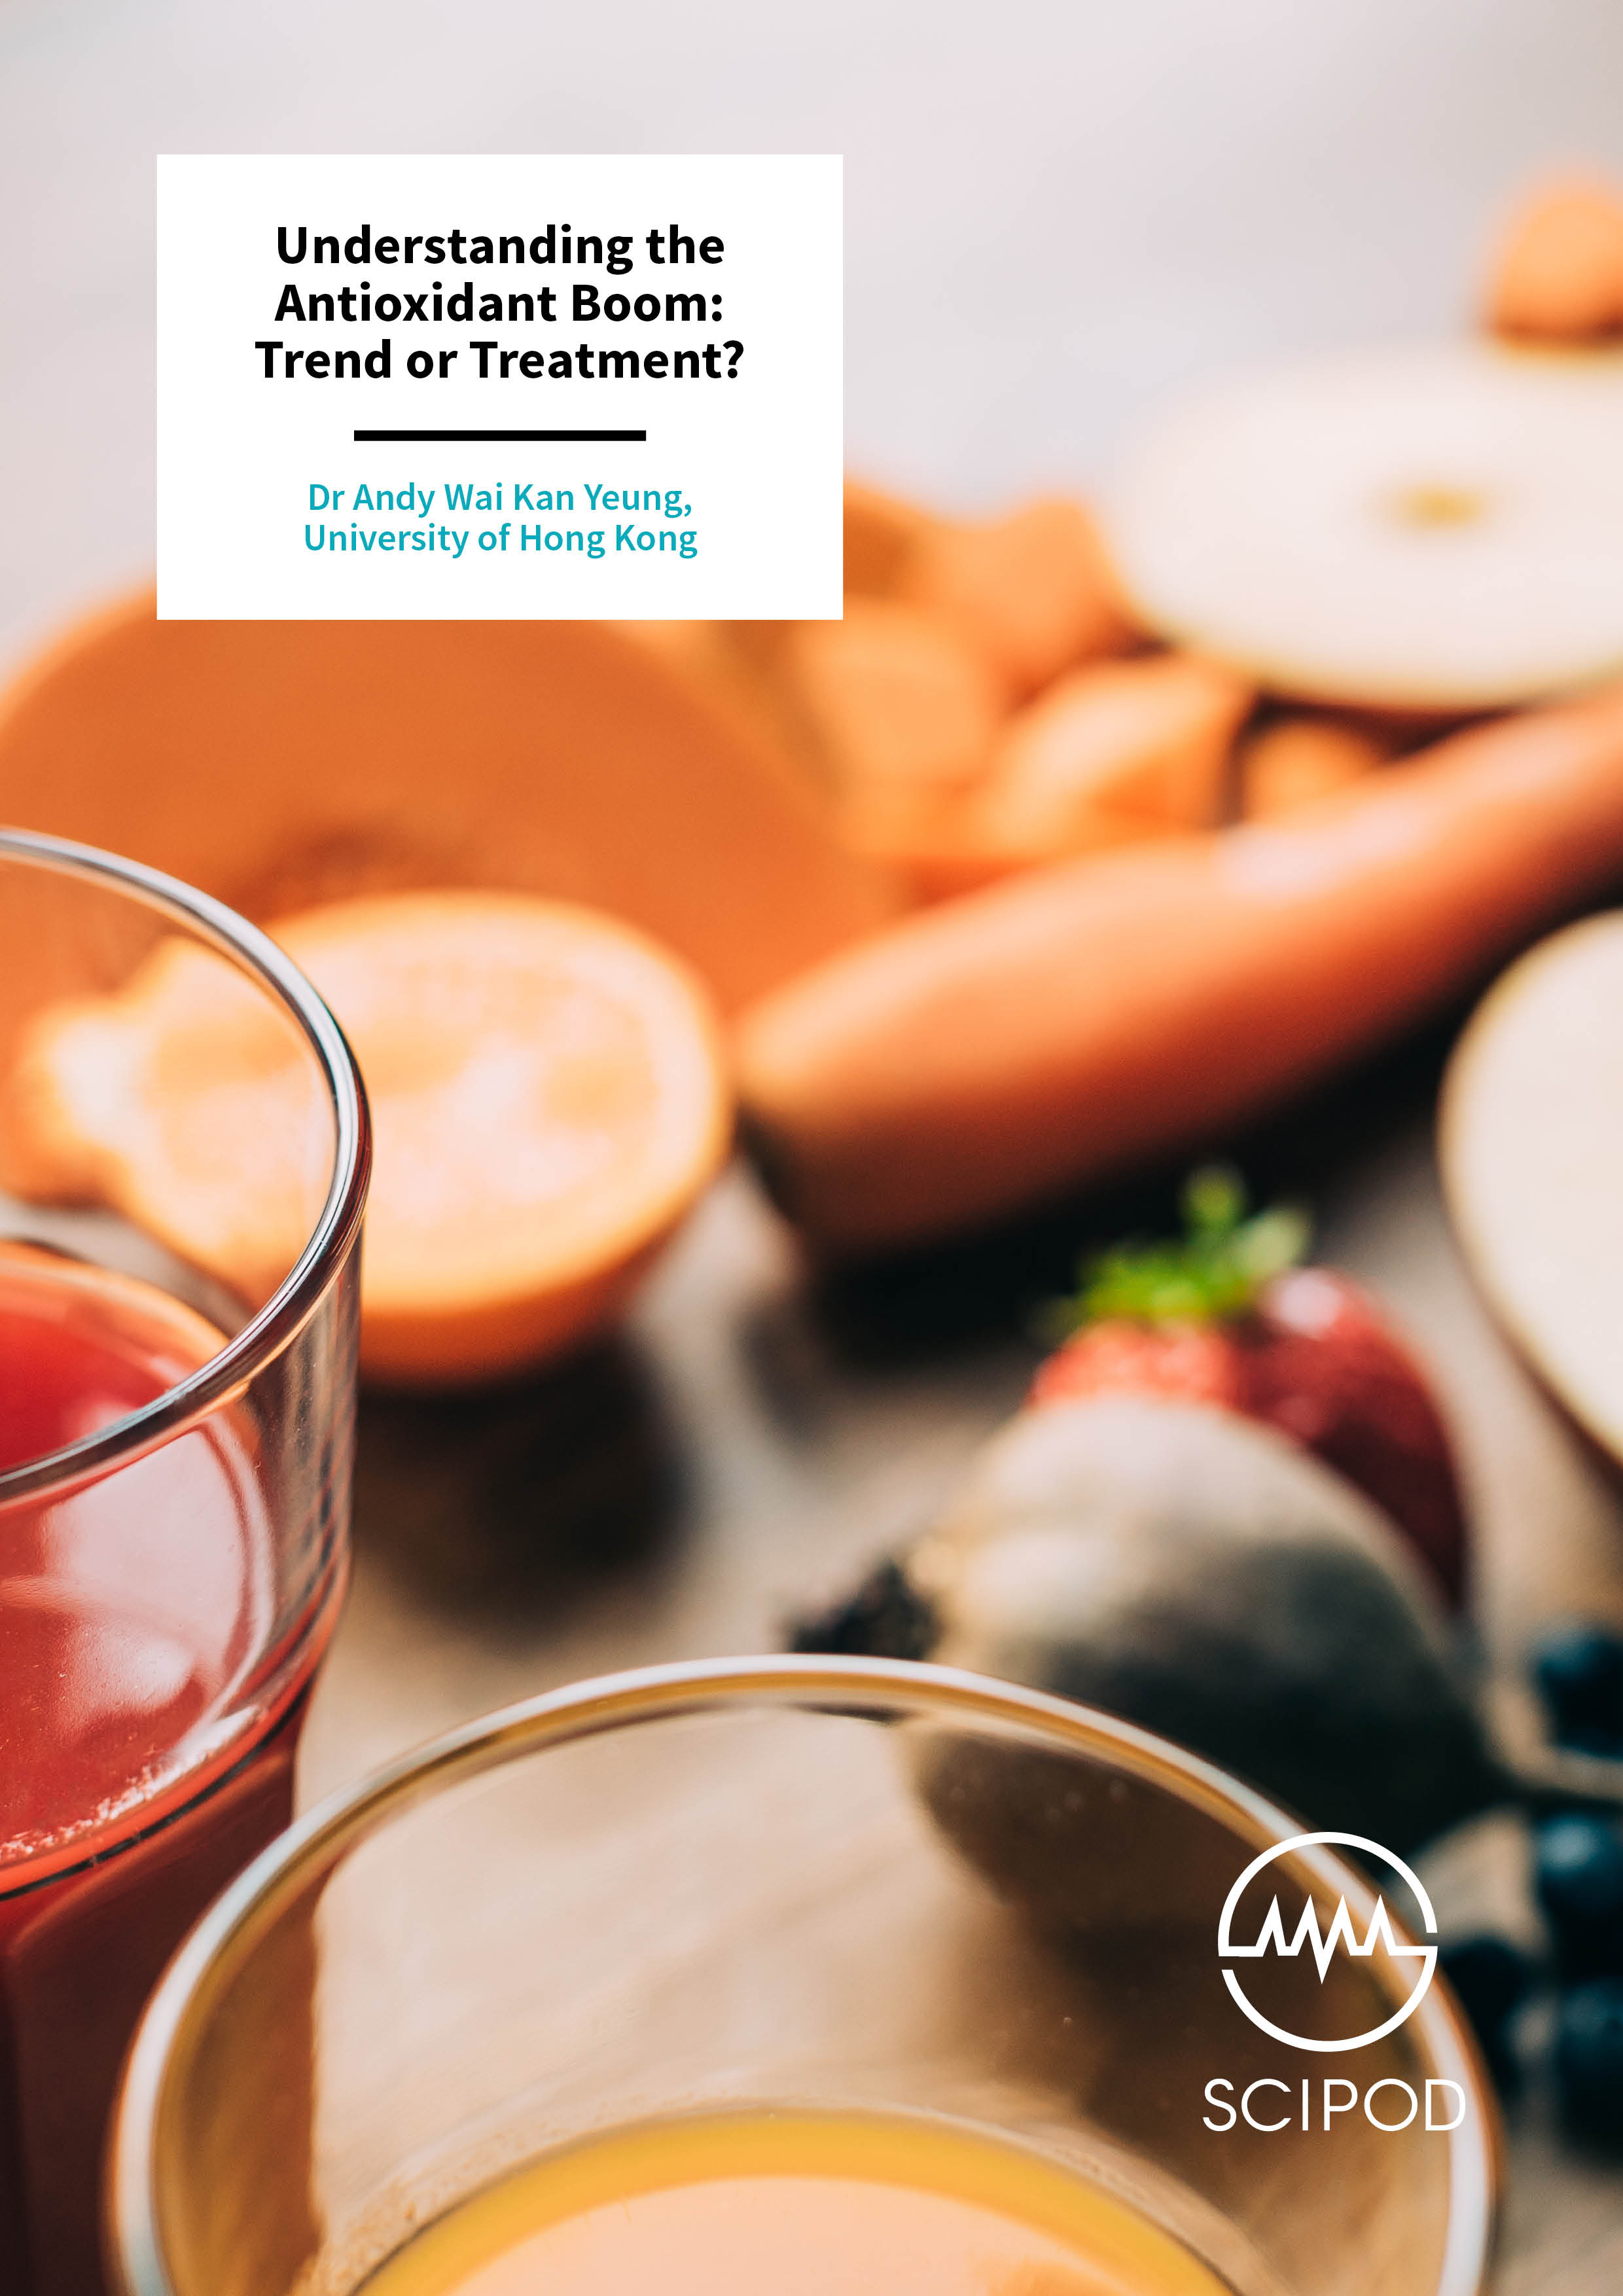 Understanding the Antioxidant Boom: Trend or Treatment? – Dr Andy Wai Kan Yeung, University of Hong Kong